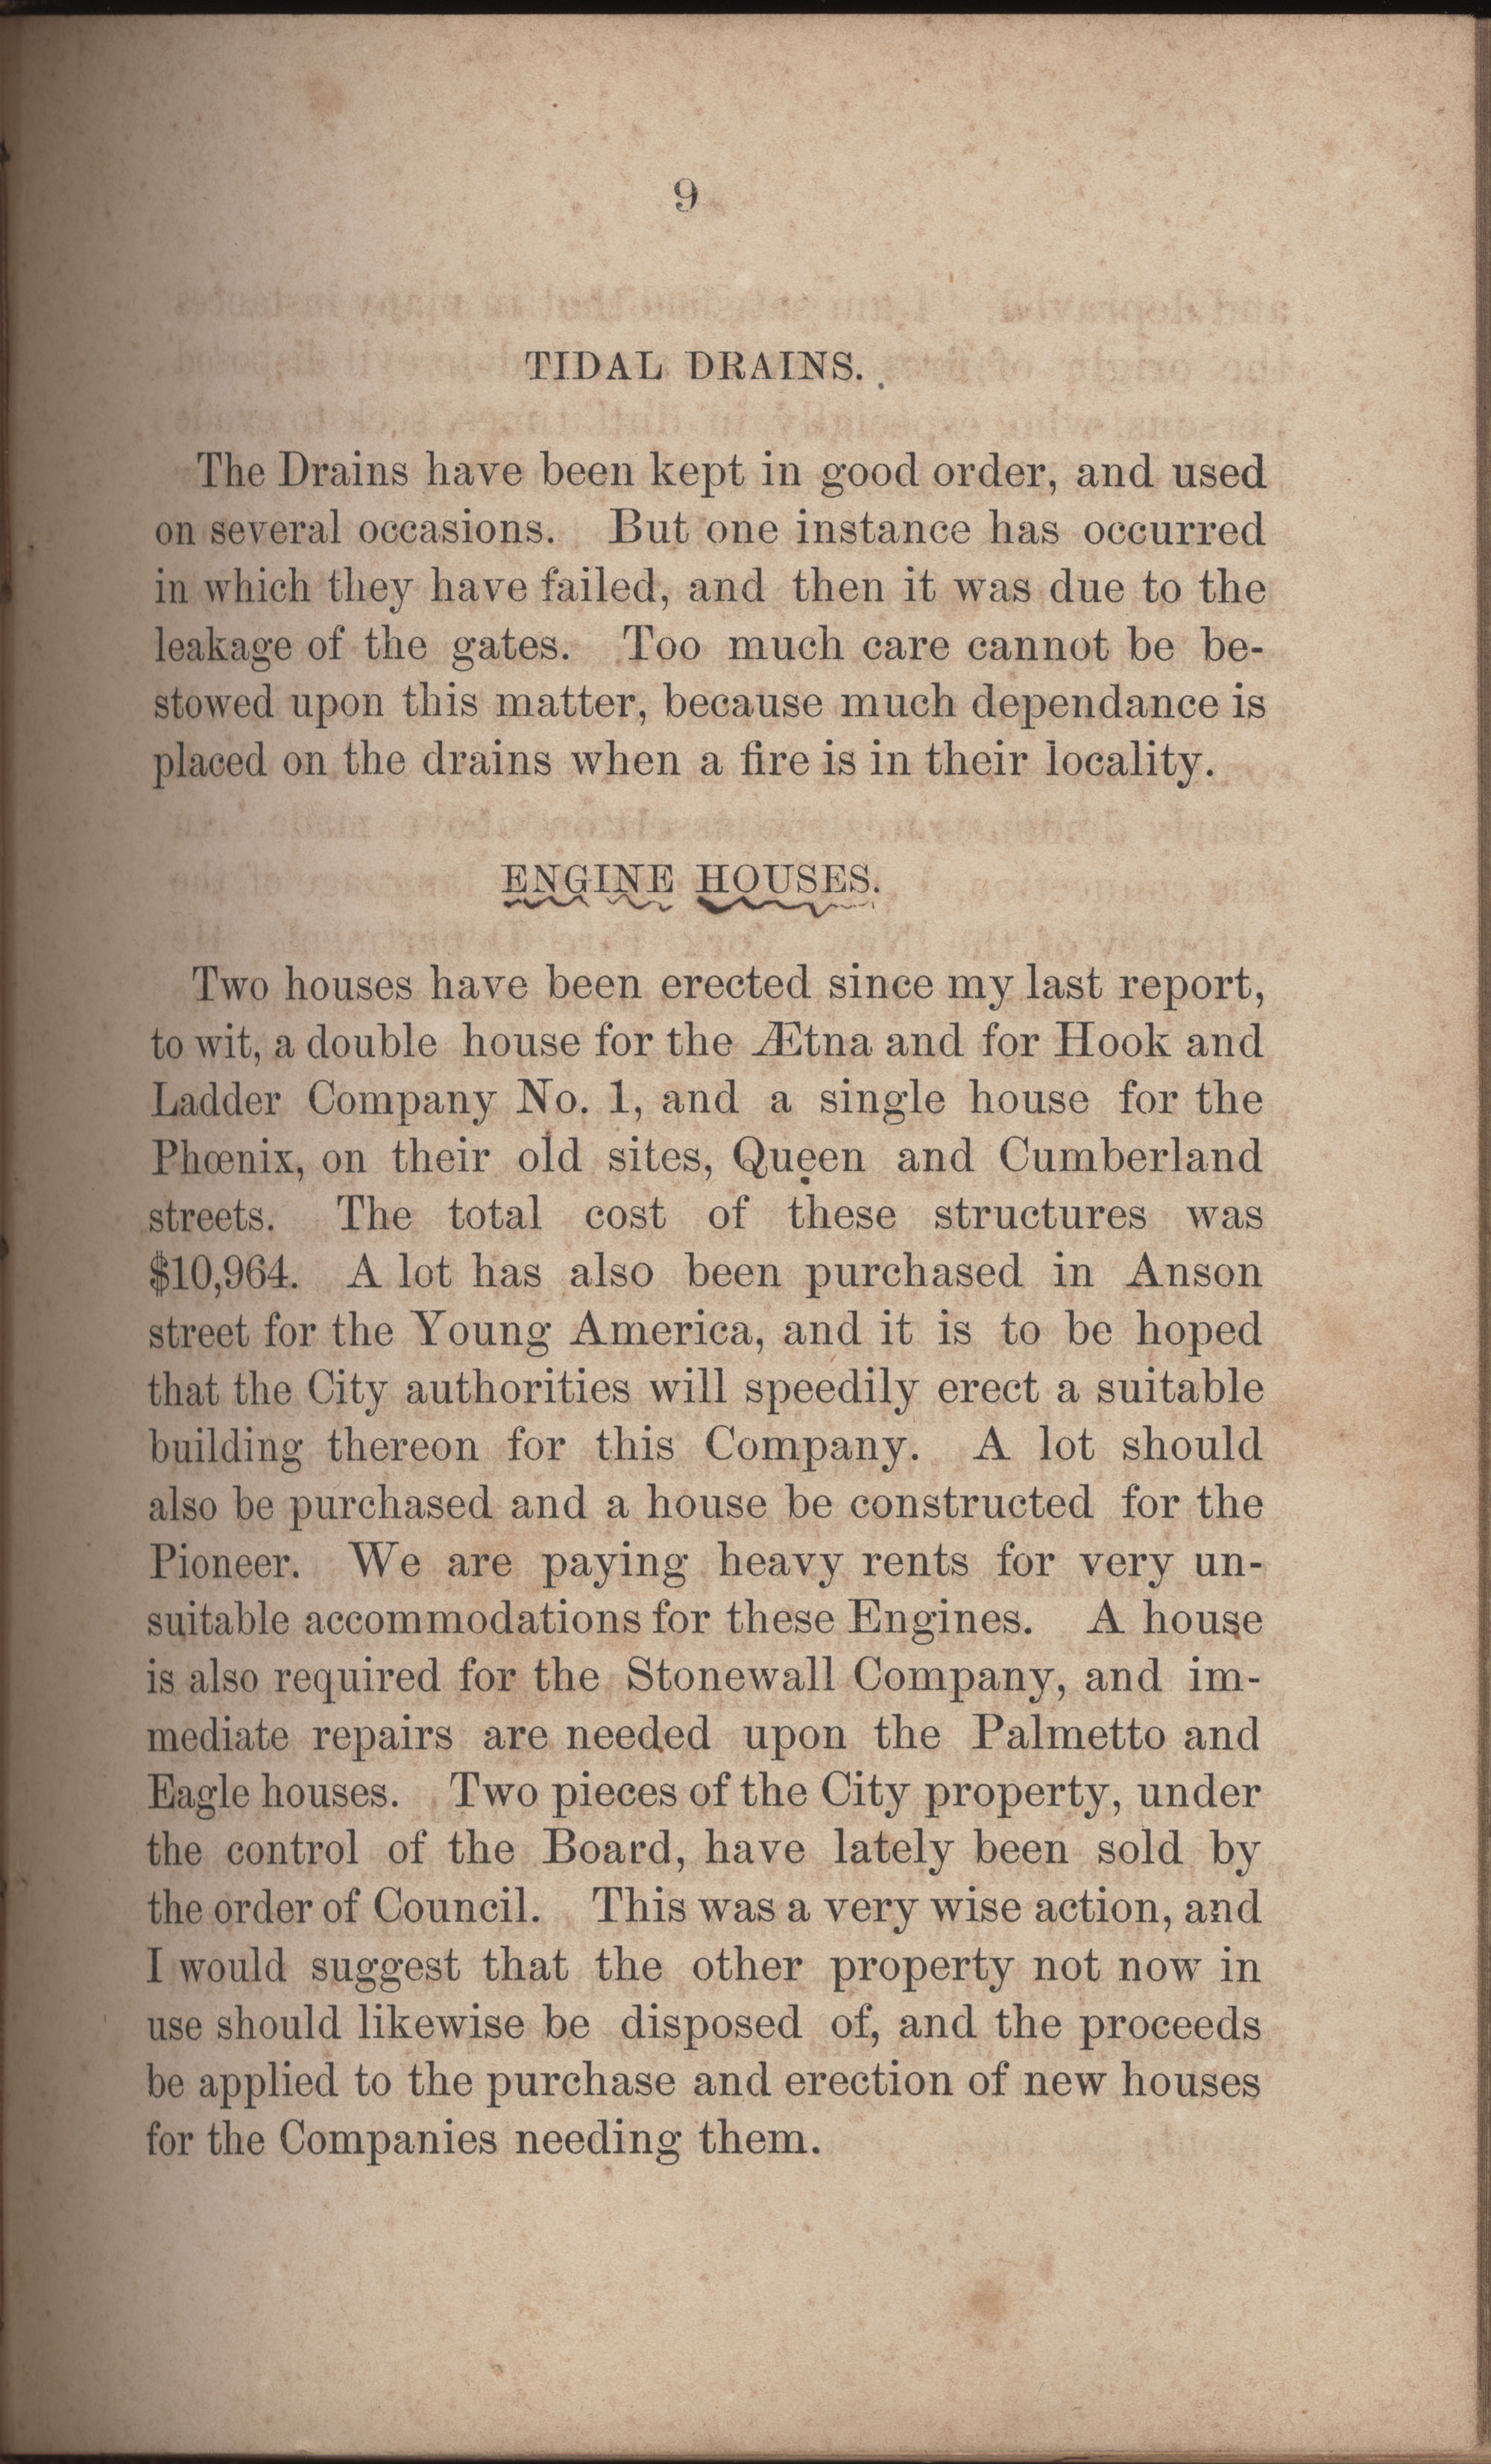 Annual Report of the Chief of the Fire Department of the City of Charleston, page 236